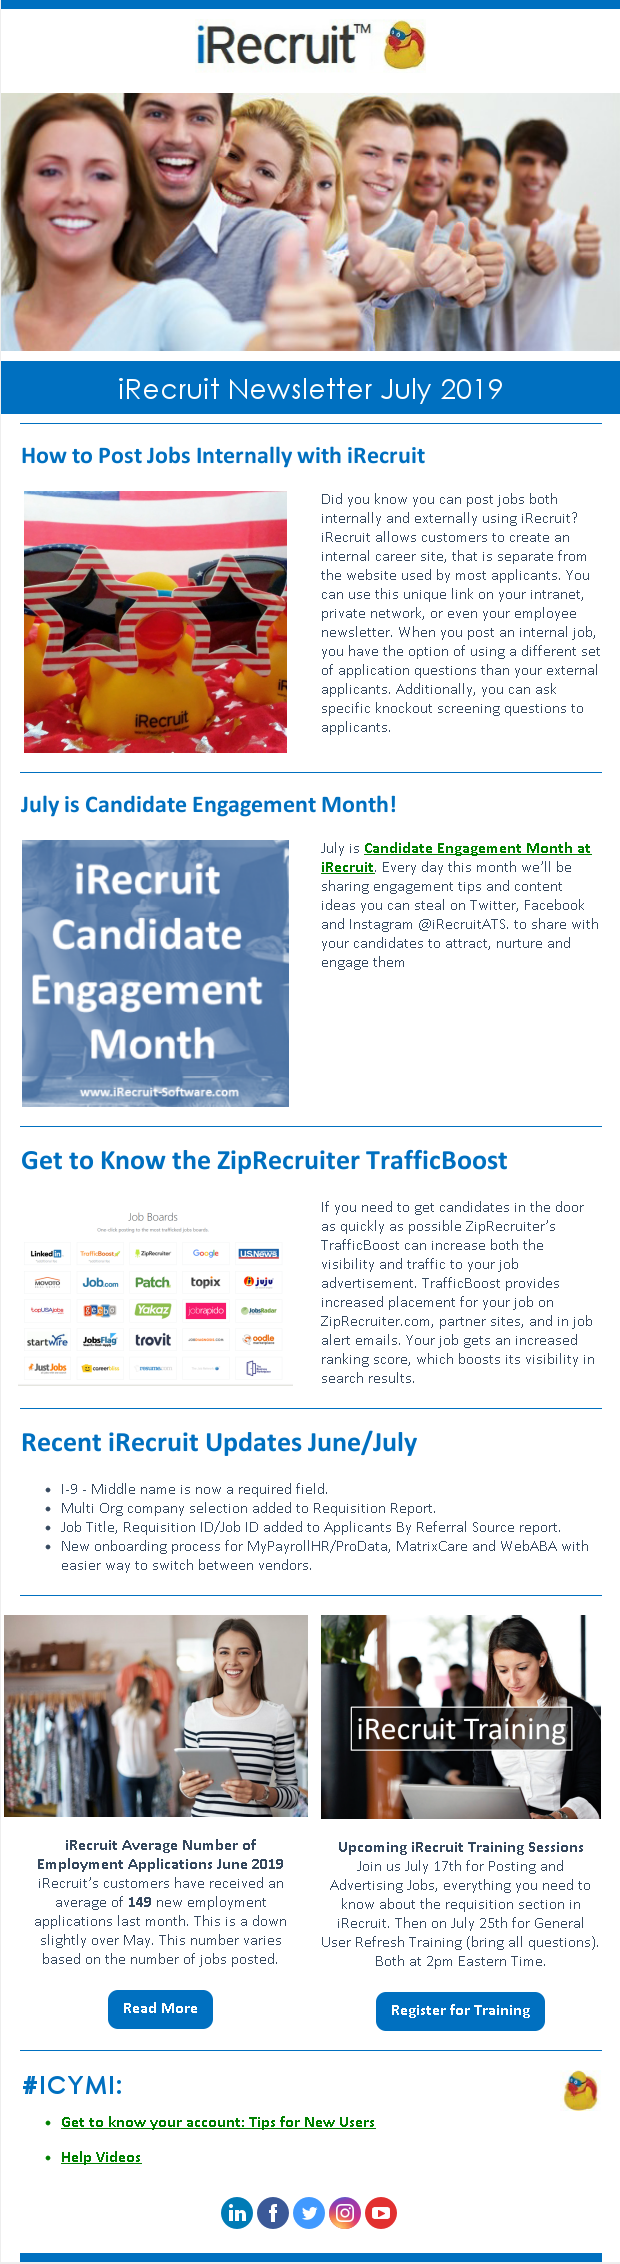 iRecruit Customer Newsletter July 2019